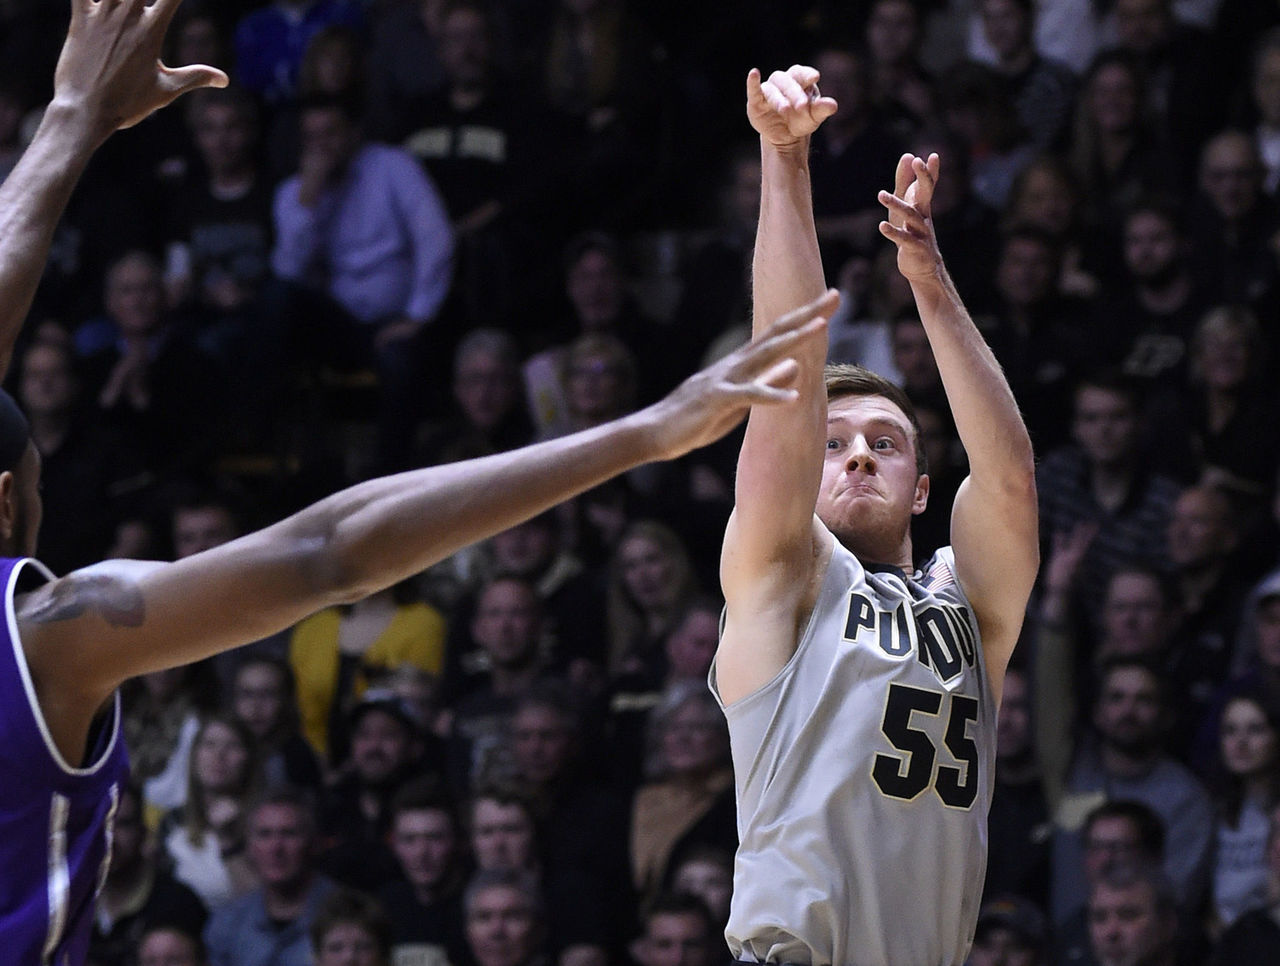 Cropped_2017-02-02t025905z_1445914427_nocid_rtrmadp_3_ncaa-basketball-northwestern-at-purdue